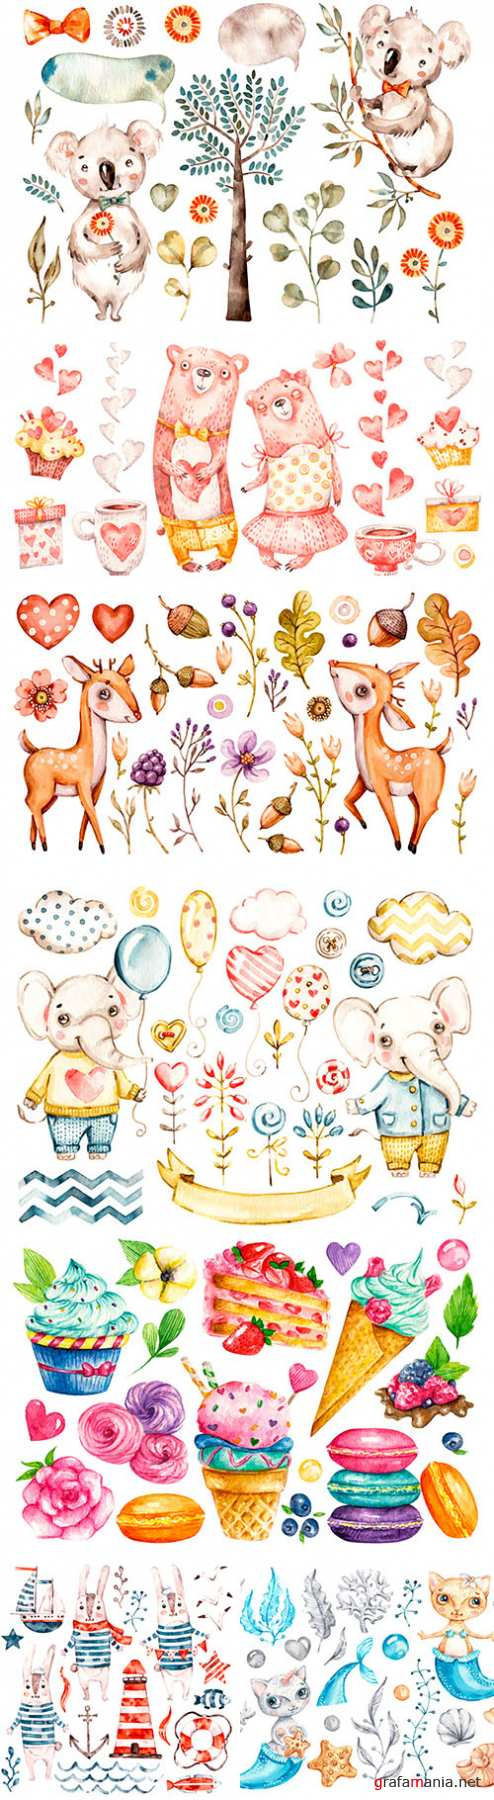 Cute animals, flowers and sweets watercolor illustrations